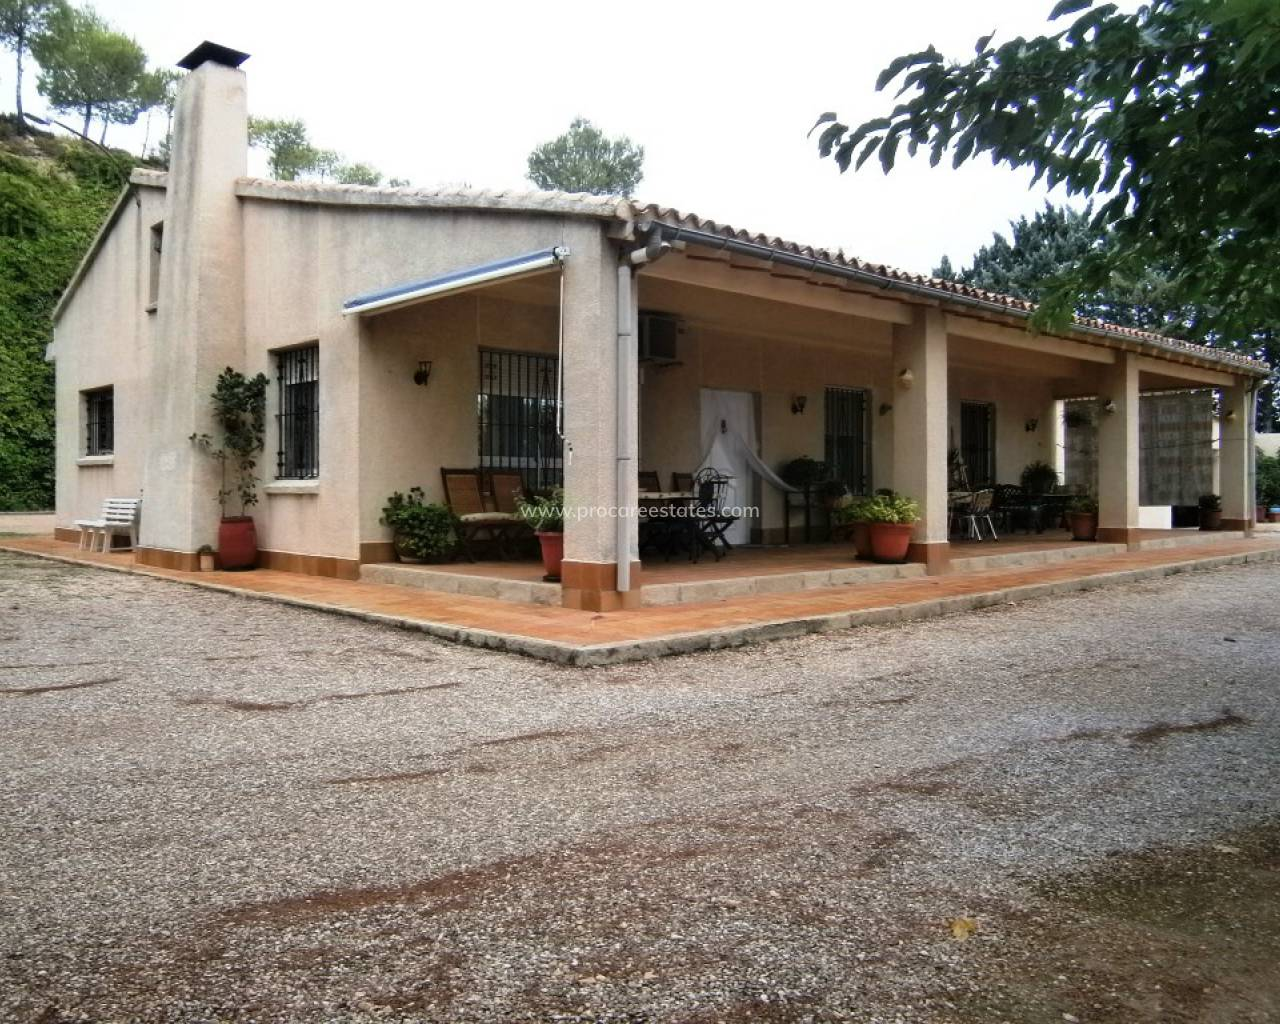 Country Property - Revente - Cocentaina - Cocentaina